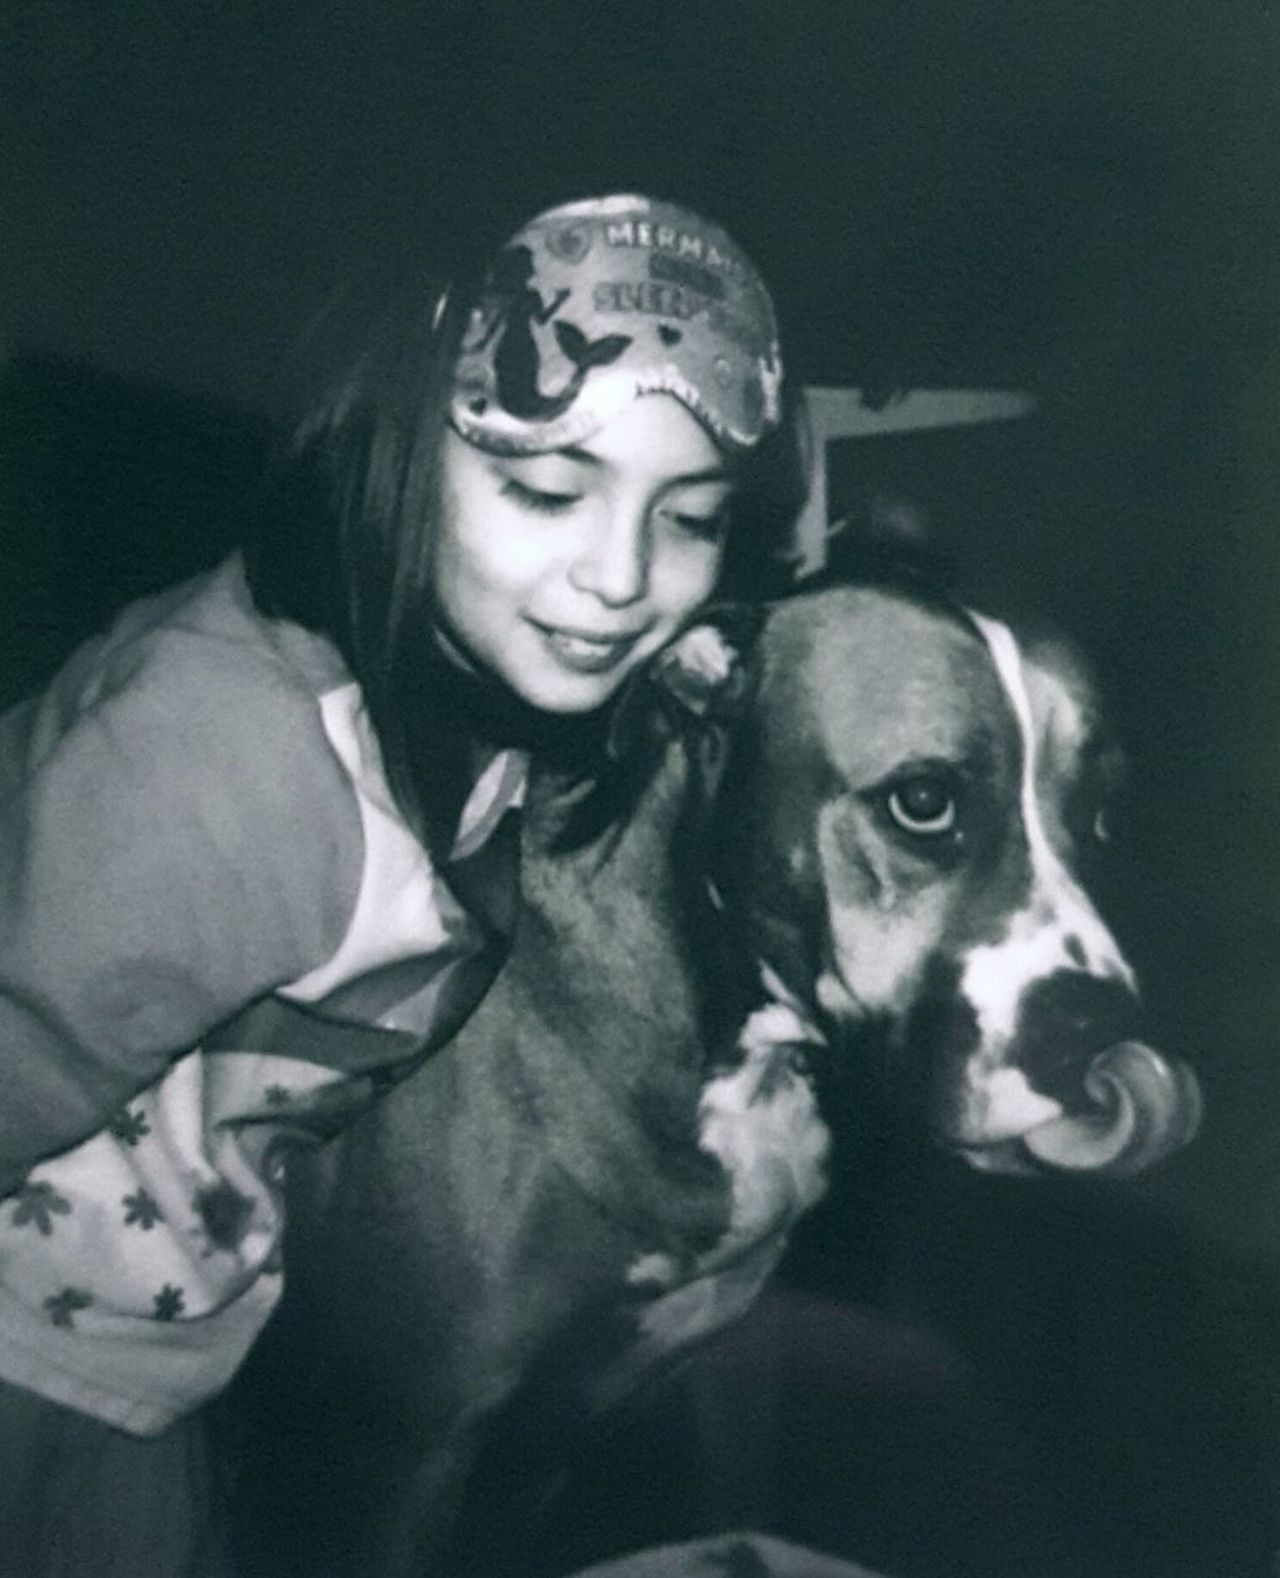 Pets Polaroid Dog Dog❤ Dog Lover Holiday Memories Black & White Kids Being Kids Holiday MerryChristmas Domestic Animals Calm girl Family Shygirl Shyness Shy Dog Tounge Out  Growing Up Joy Life Inocence